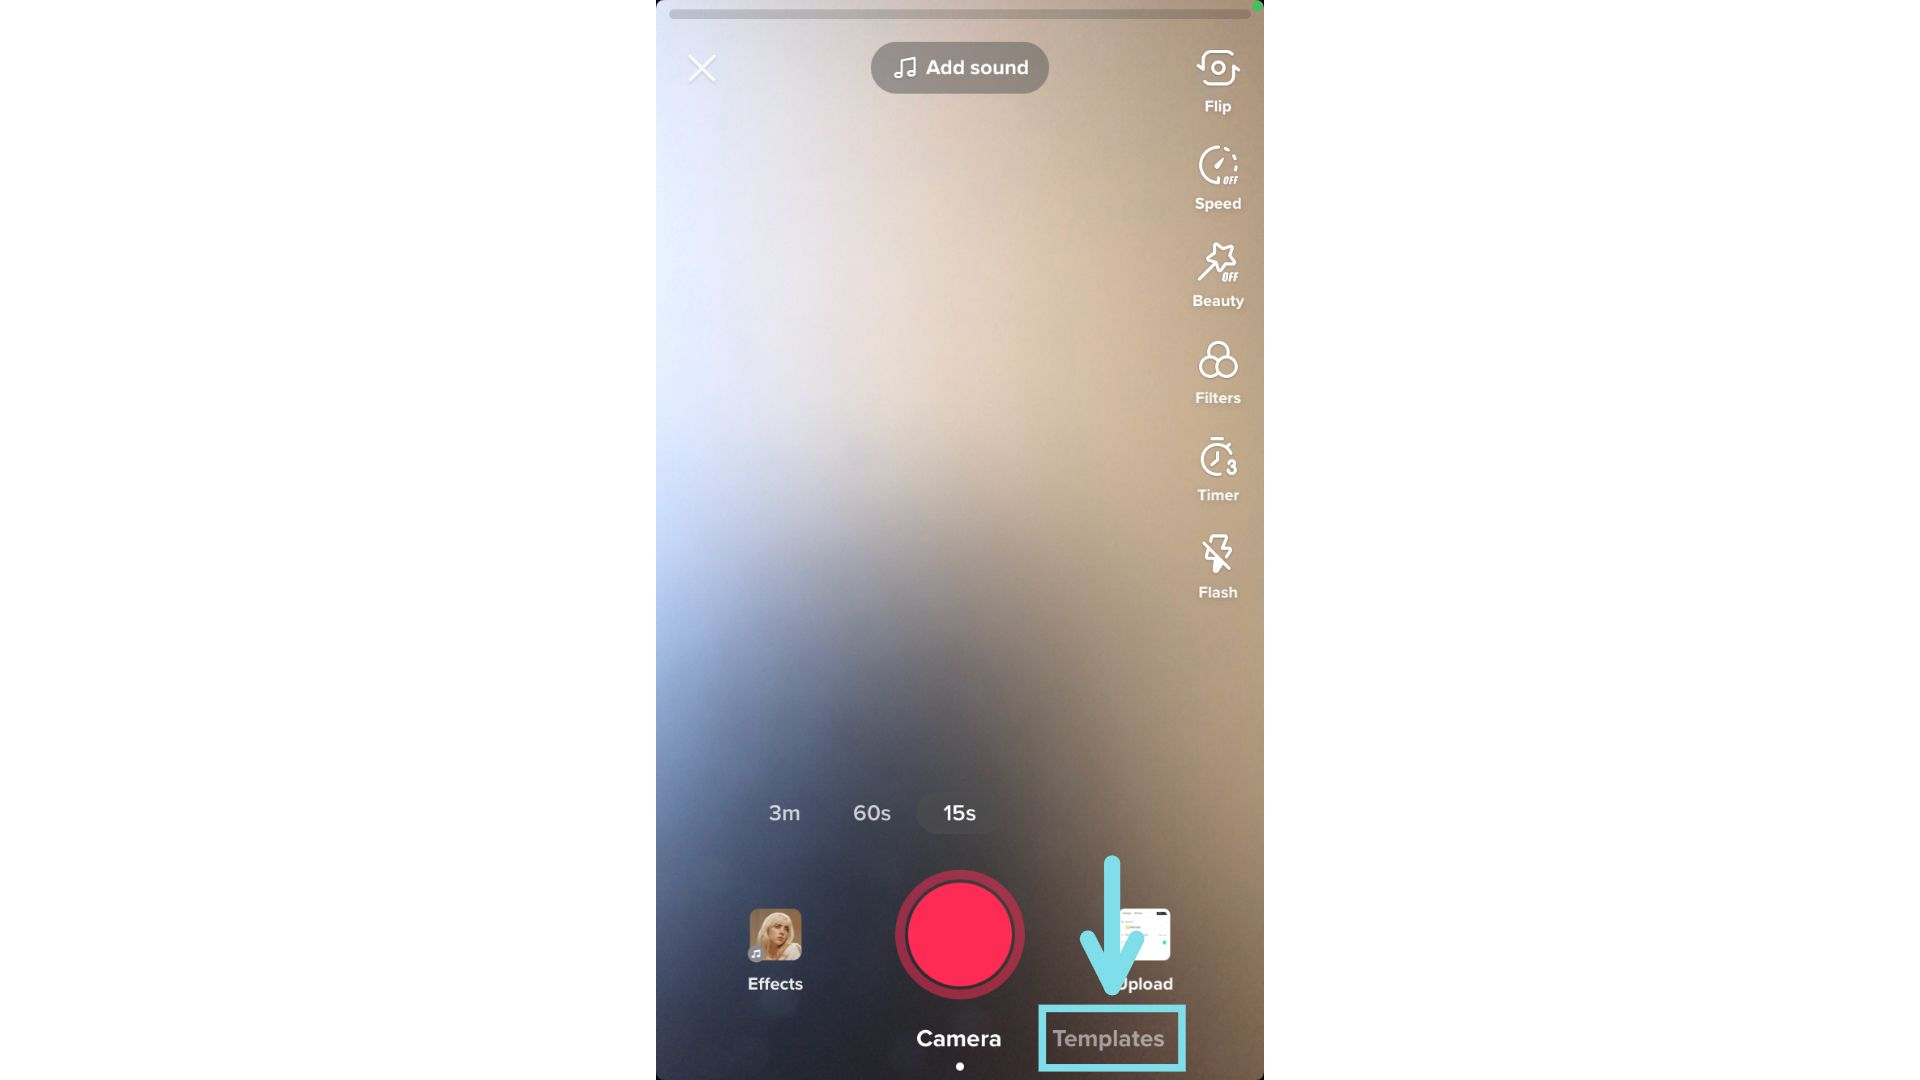 A screenshot pointing out the location of templates in TikTok.